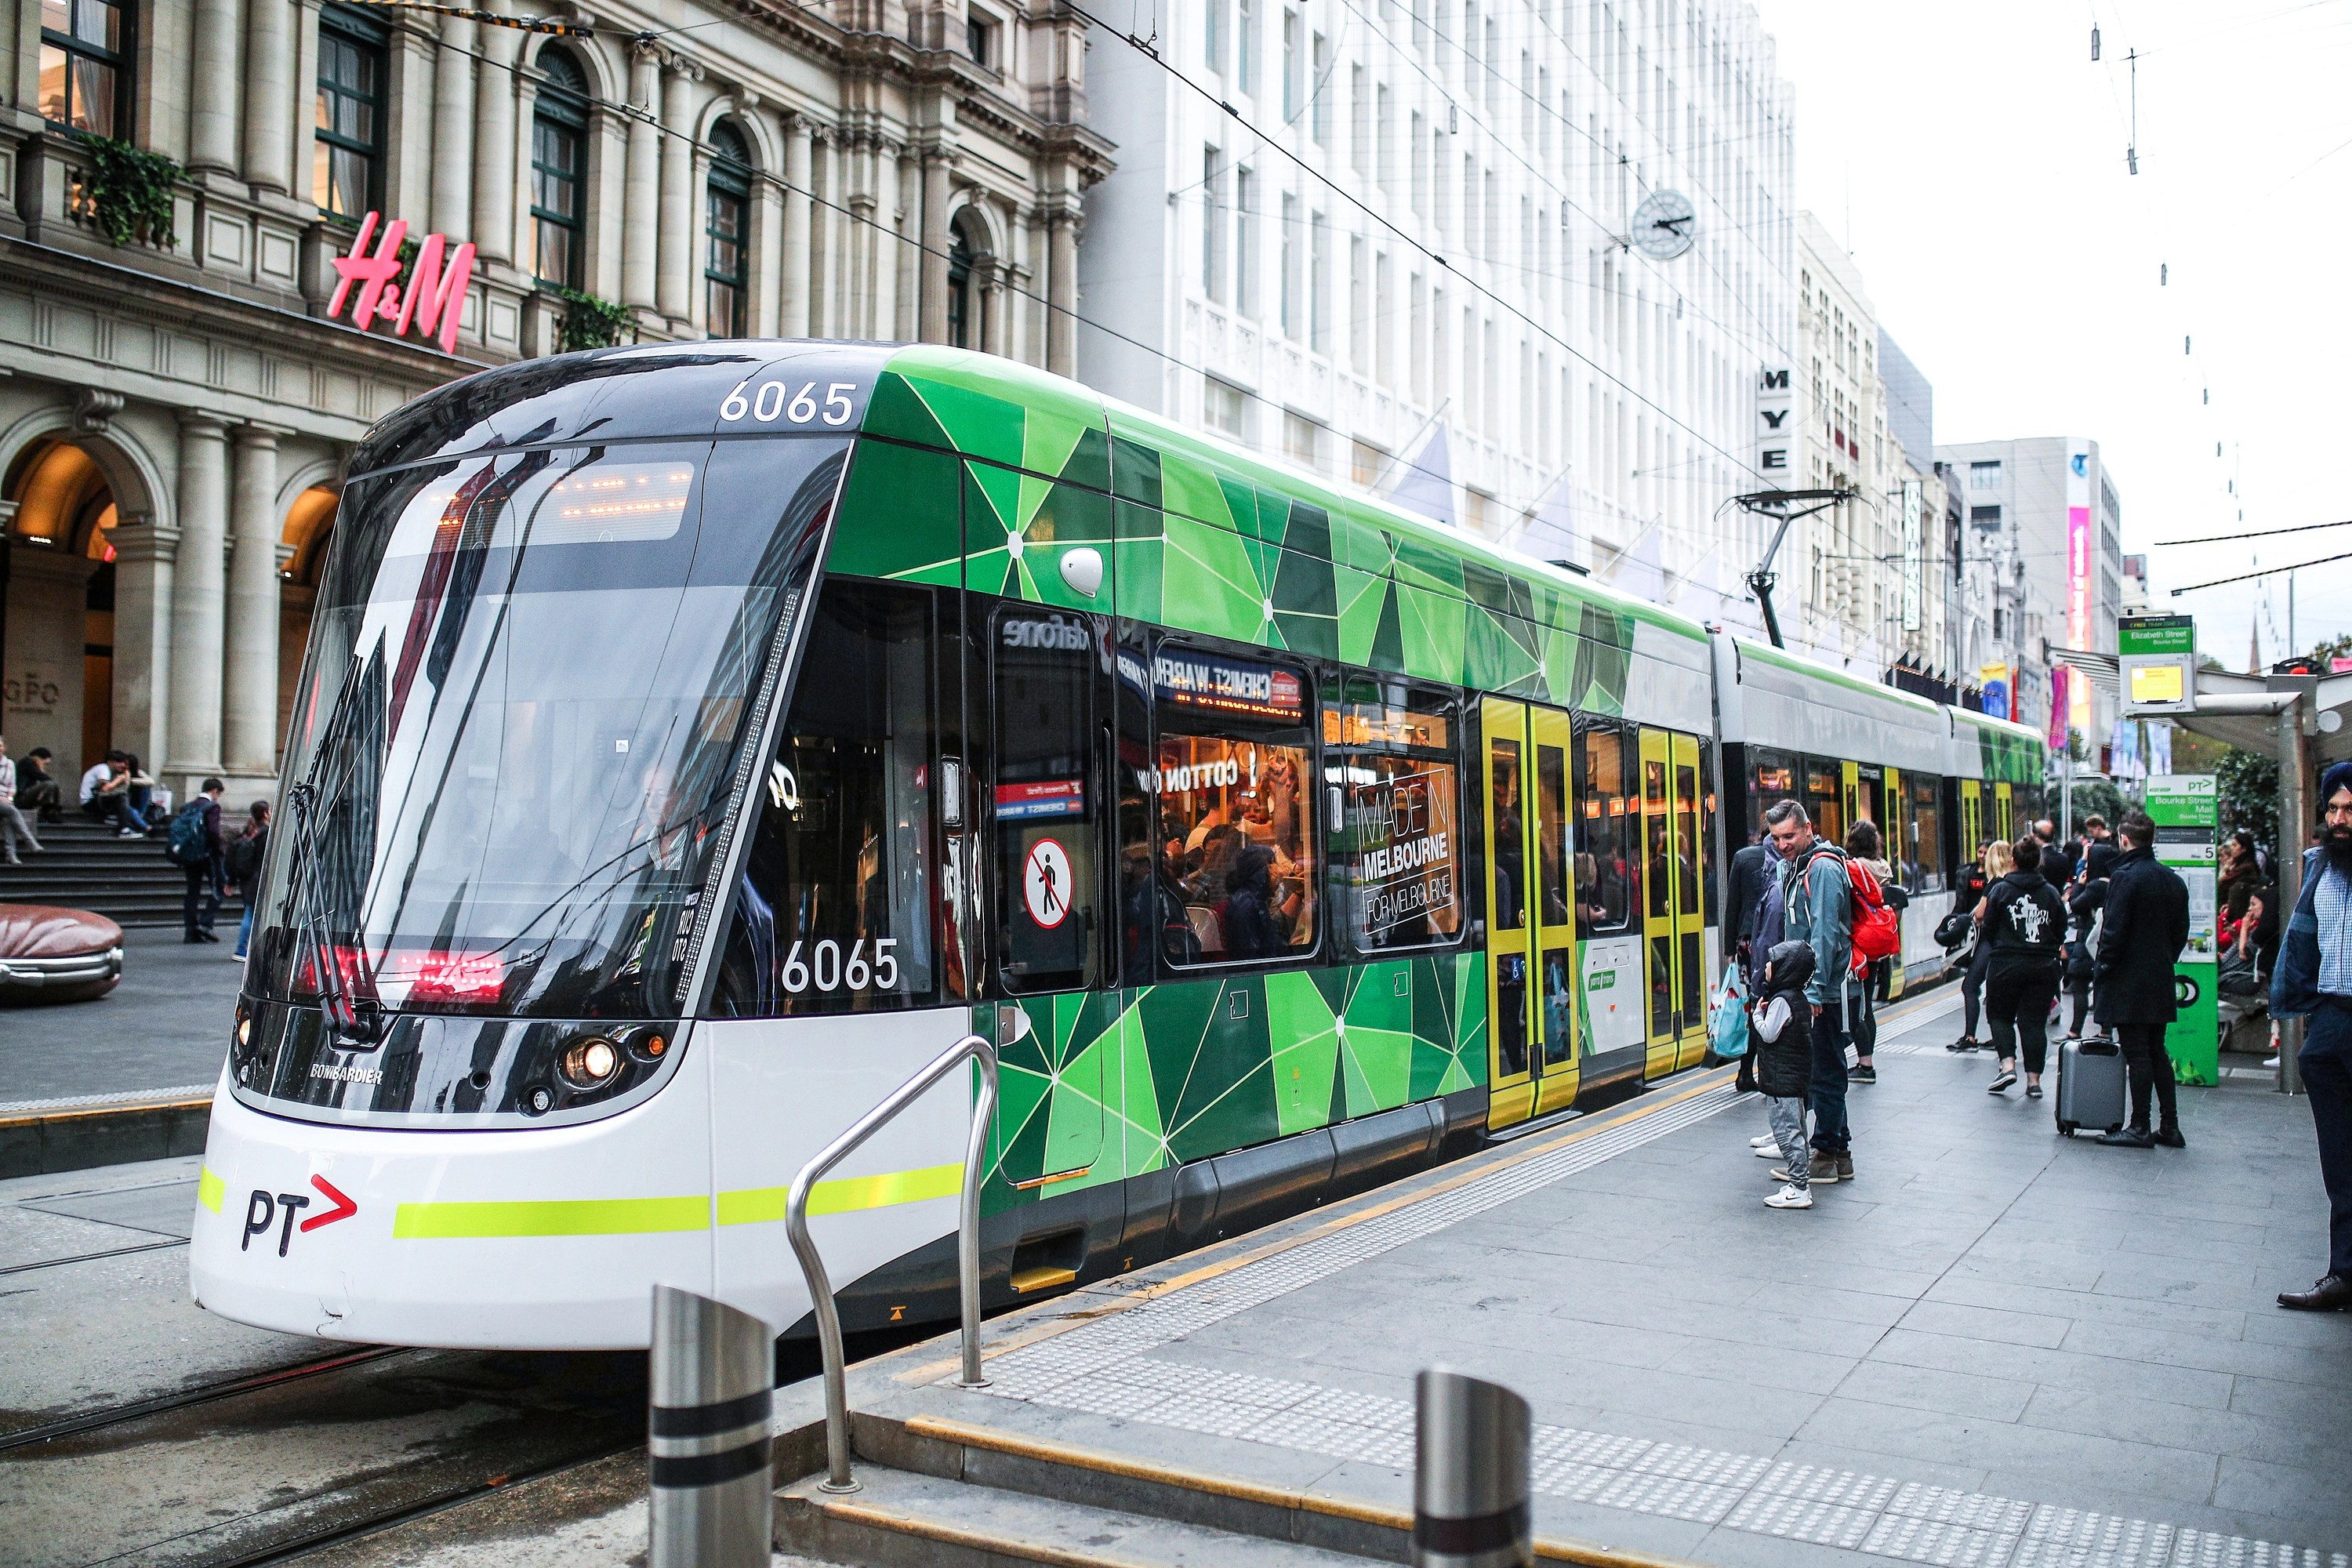 How Can Melbourne Be Made More Accessible?